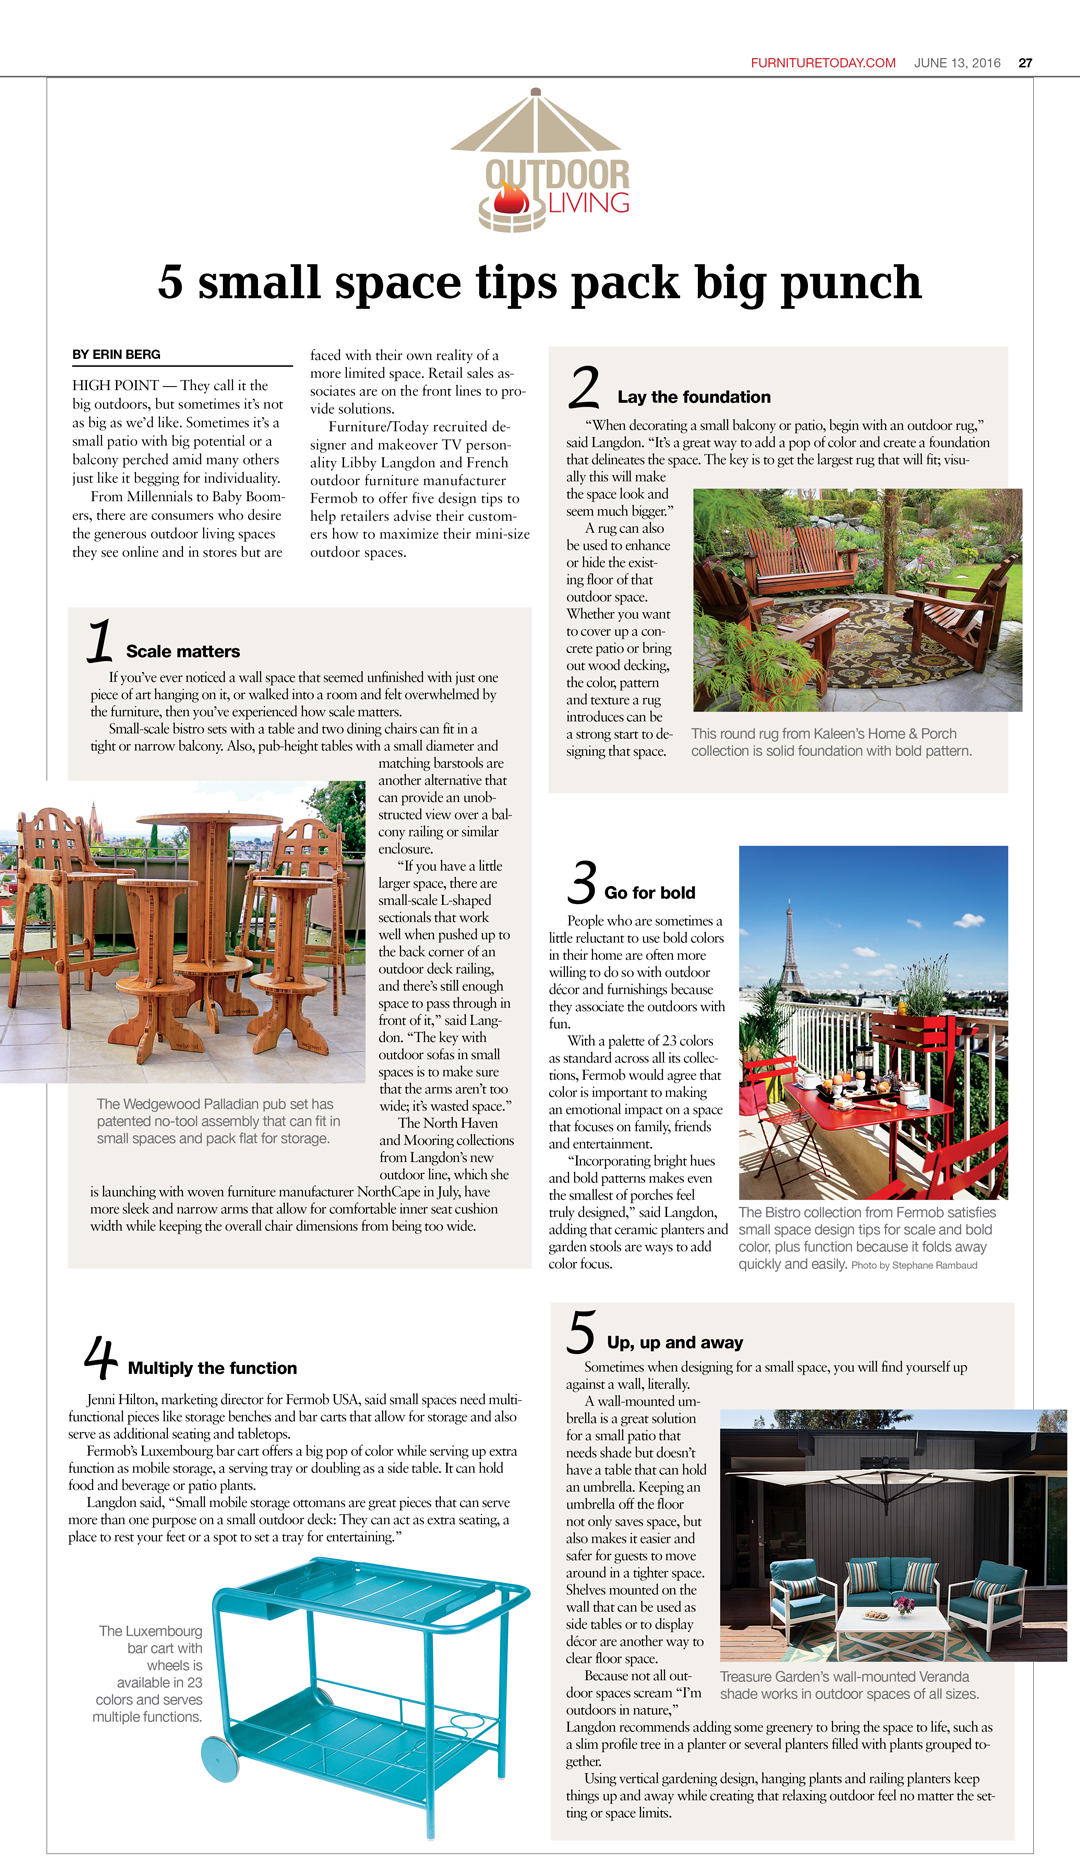 Libby_Langdon_Outdoor_Design_Tips_in_Furniture_Today.png